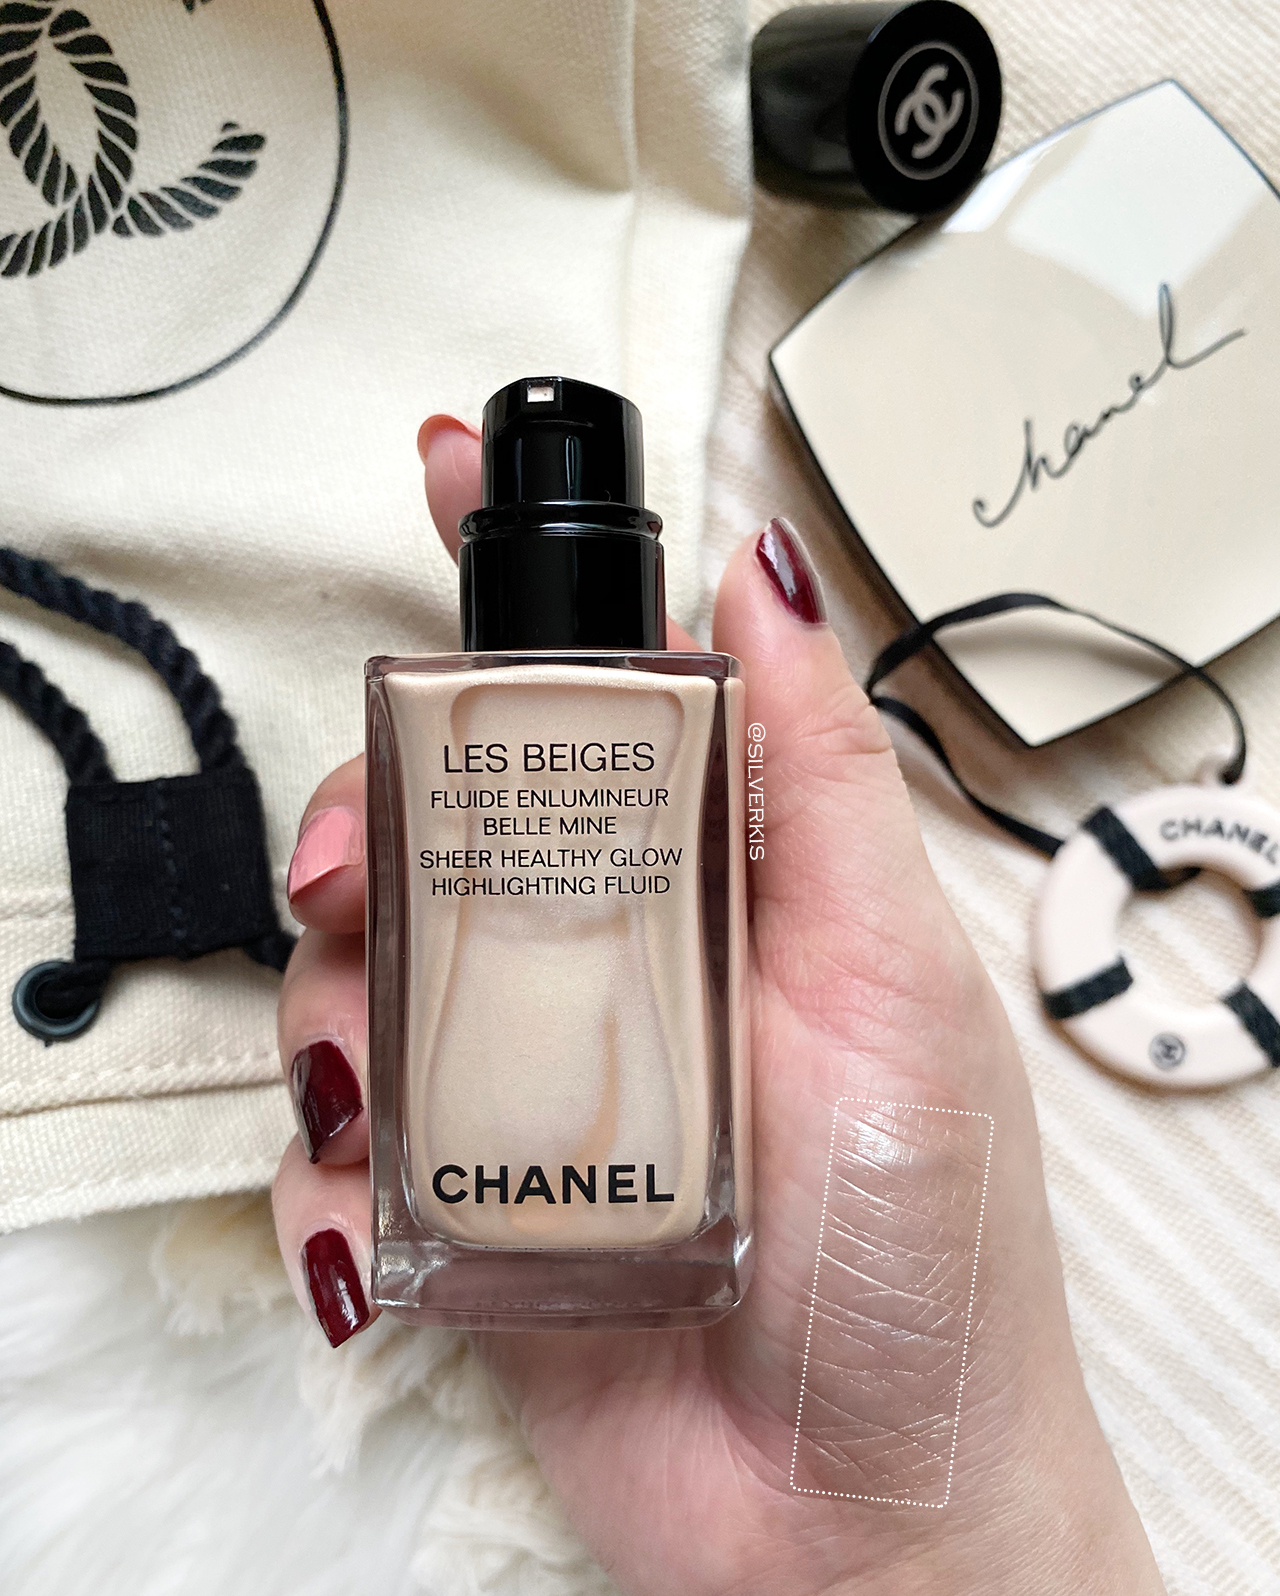 Chanel Les Beiges Sheer Pearly Glow Highlighting Fluid